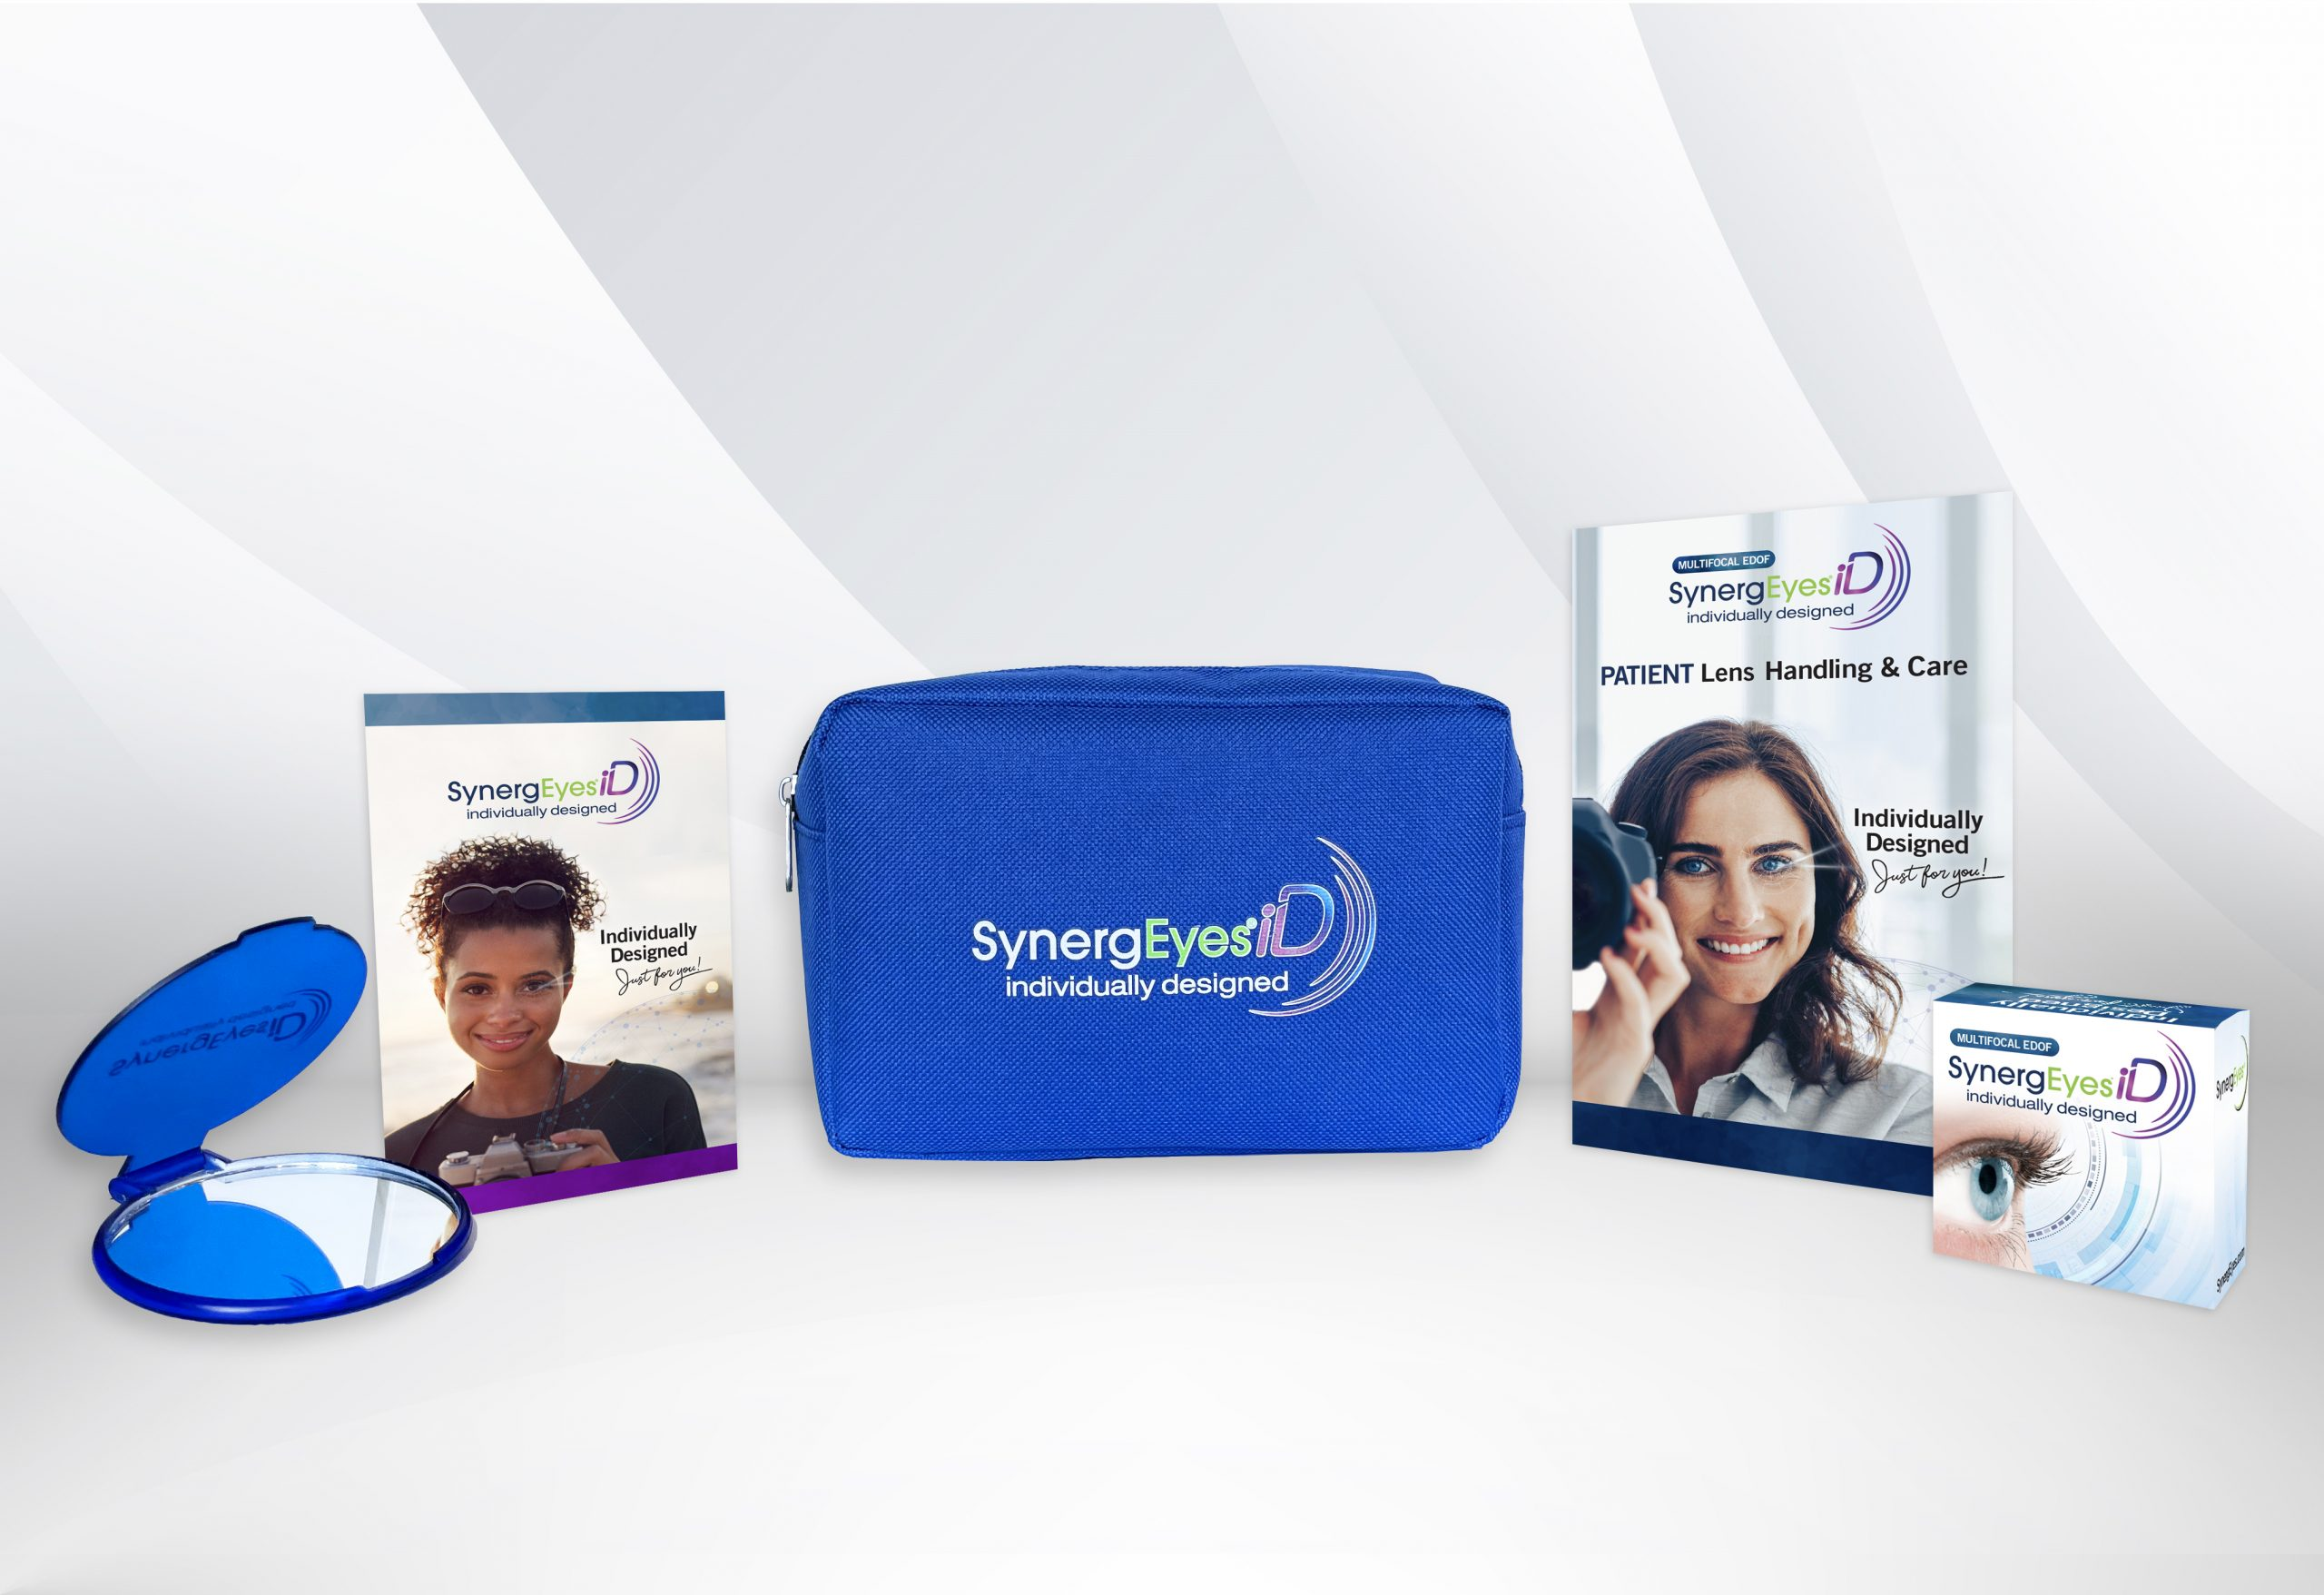 New SynergEyes iD  Patient Resources